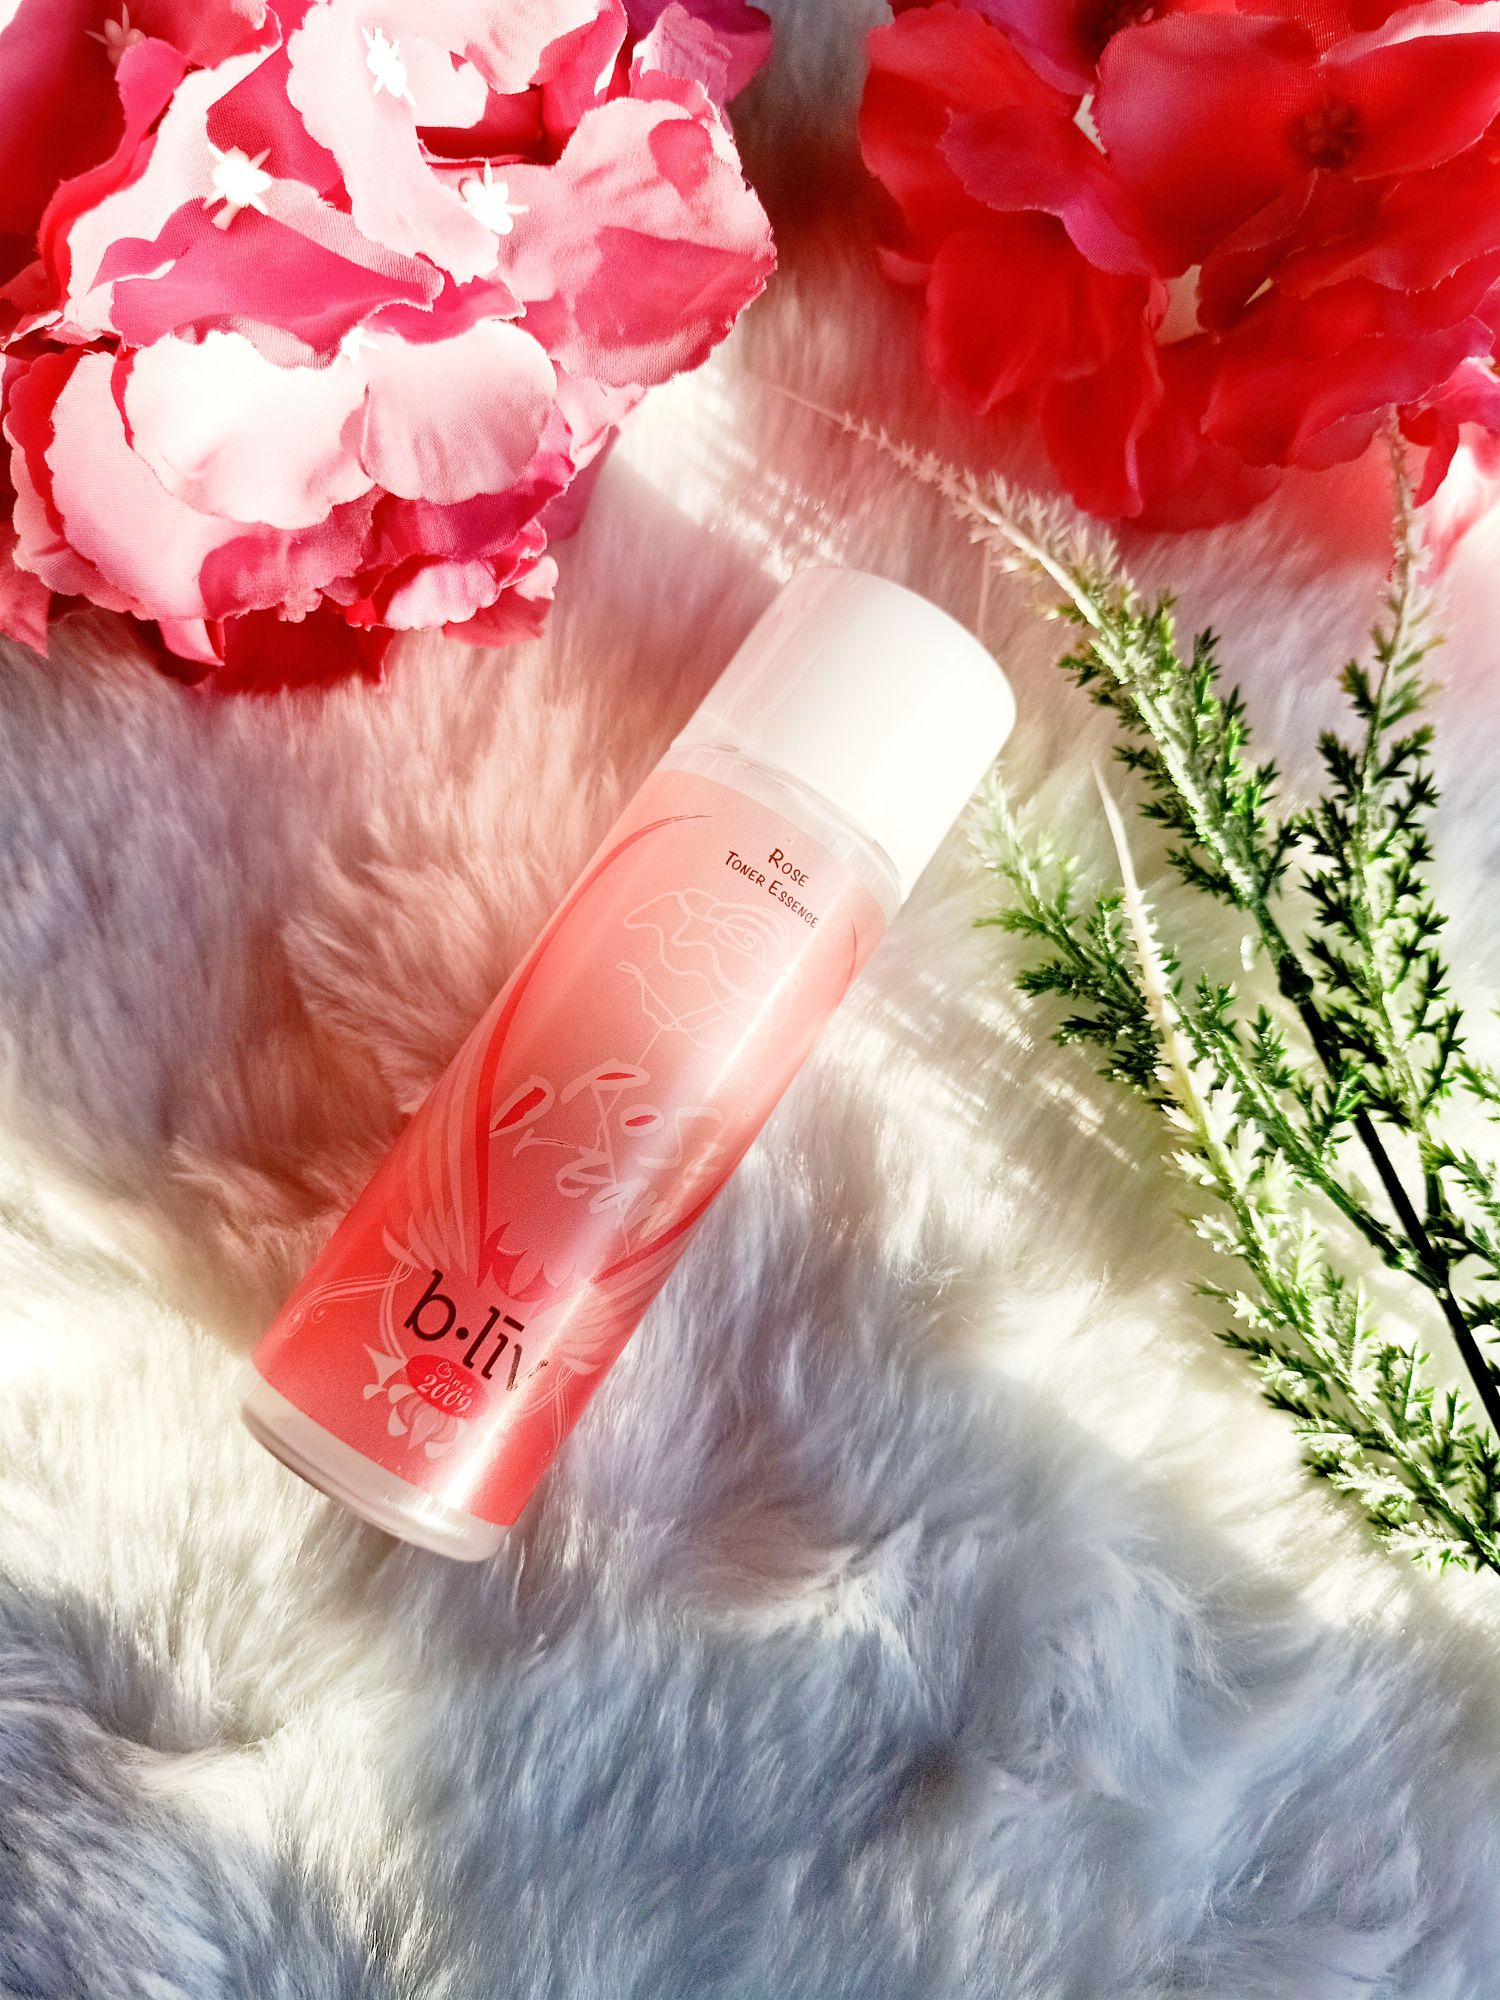 B.liv Rose Dream Toner Essence | Review